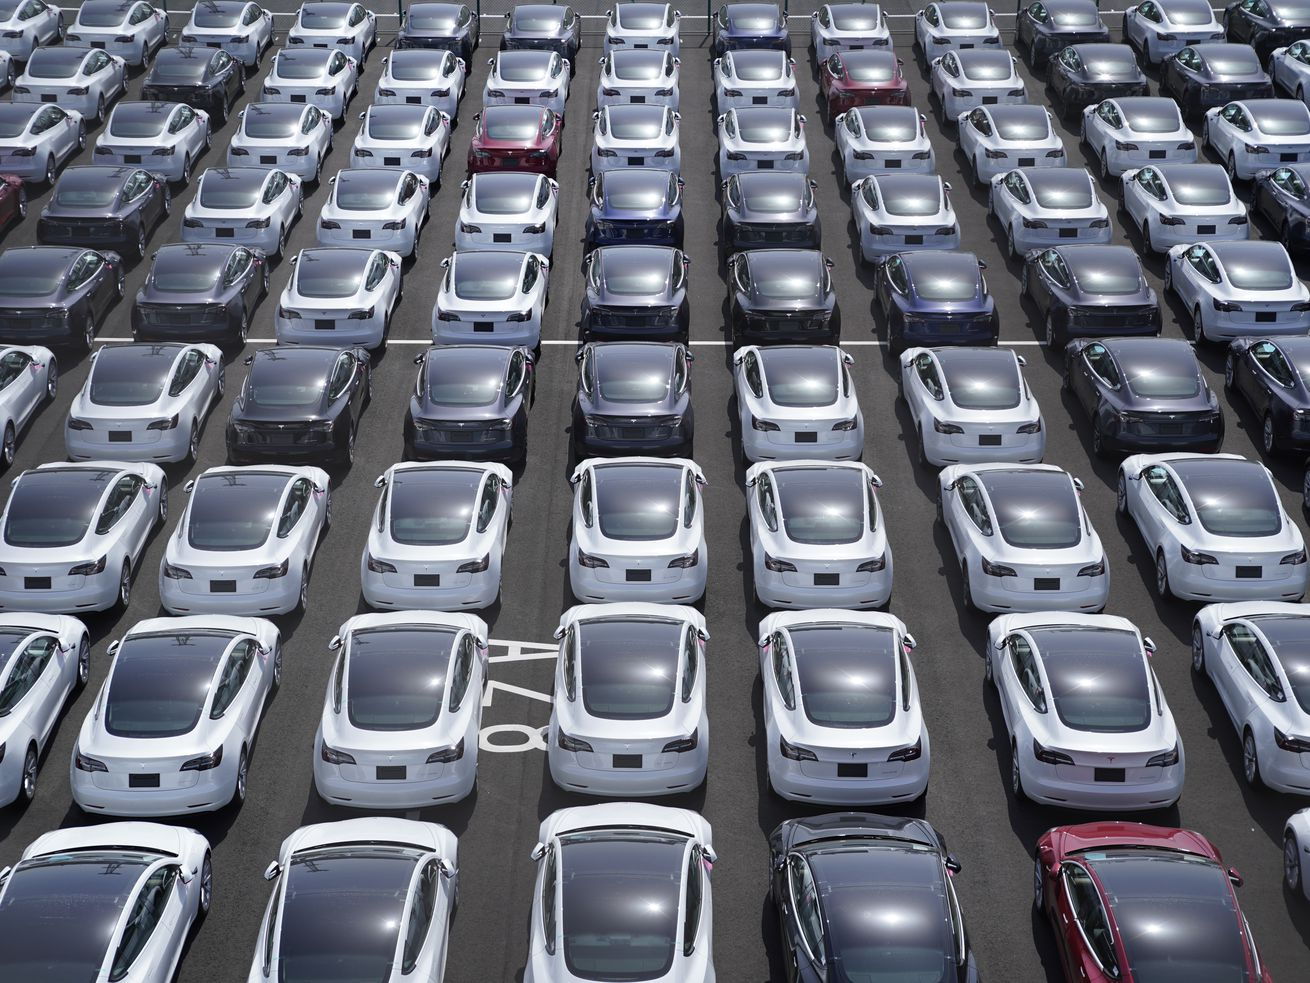 A parking lot full of Tesla automobiles.